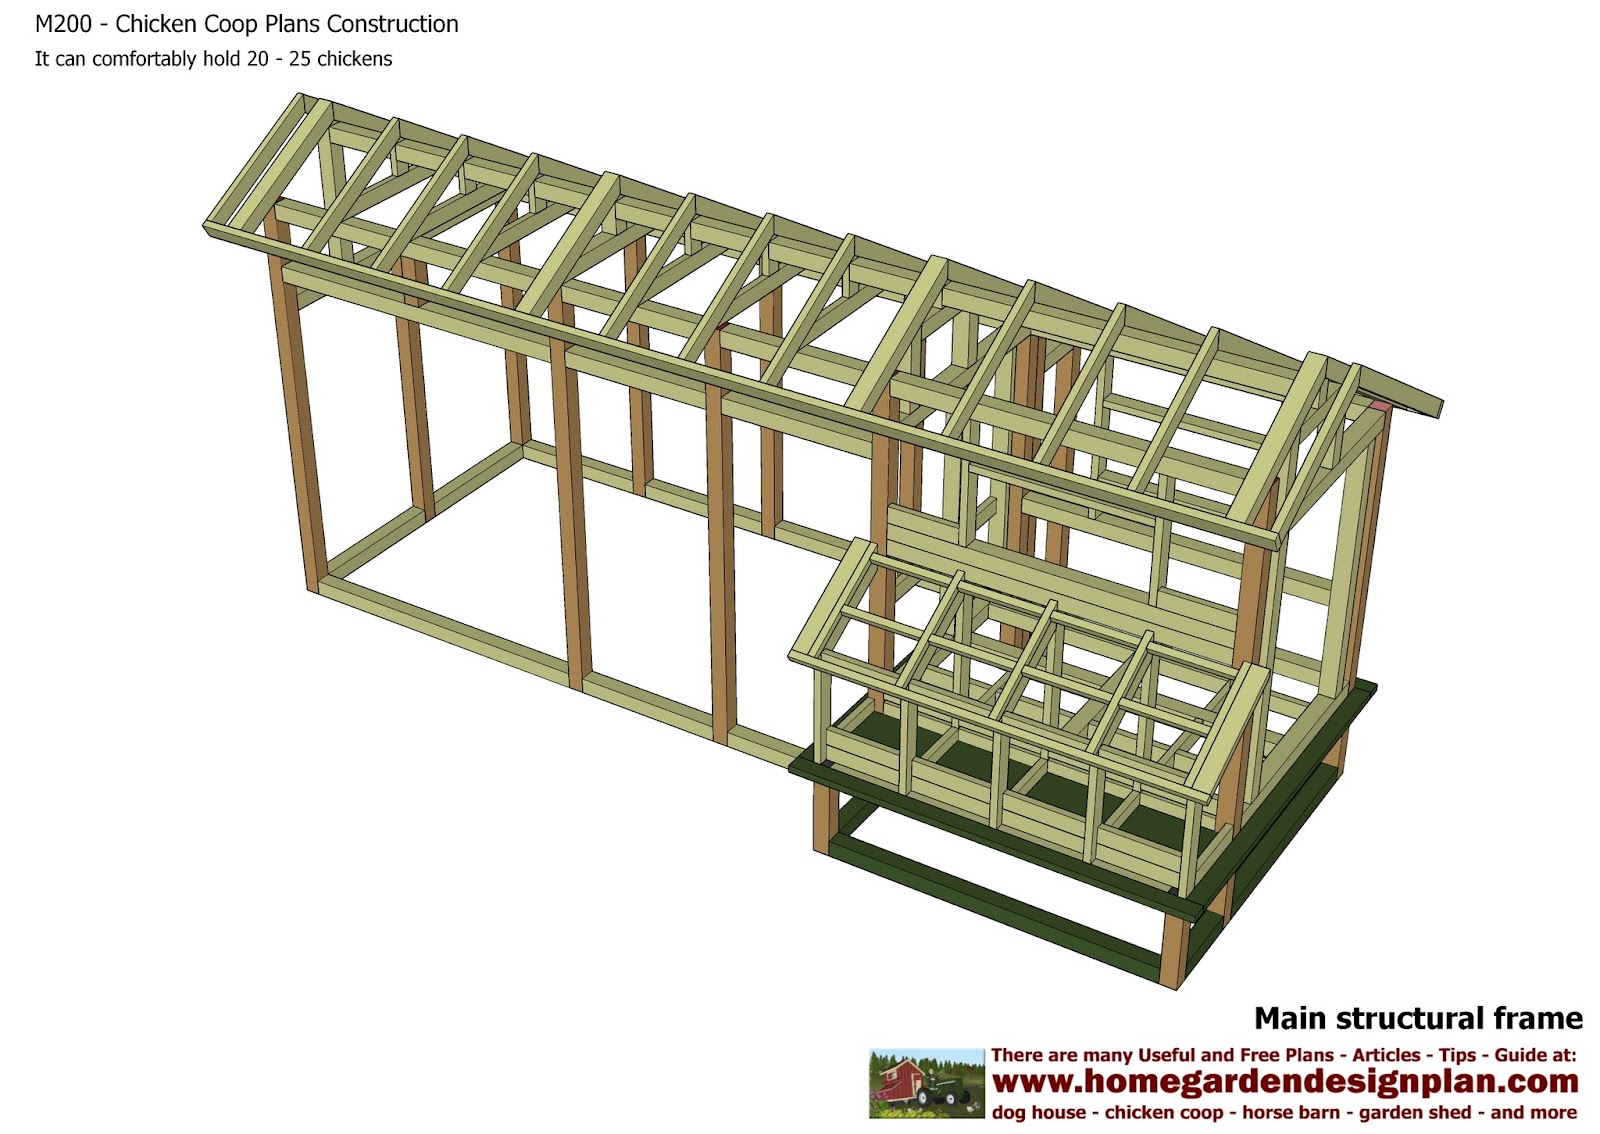 Just coop february 2015 for Free chicken coop designs plans